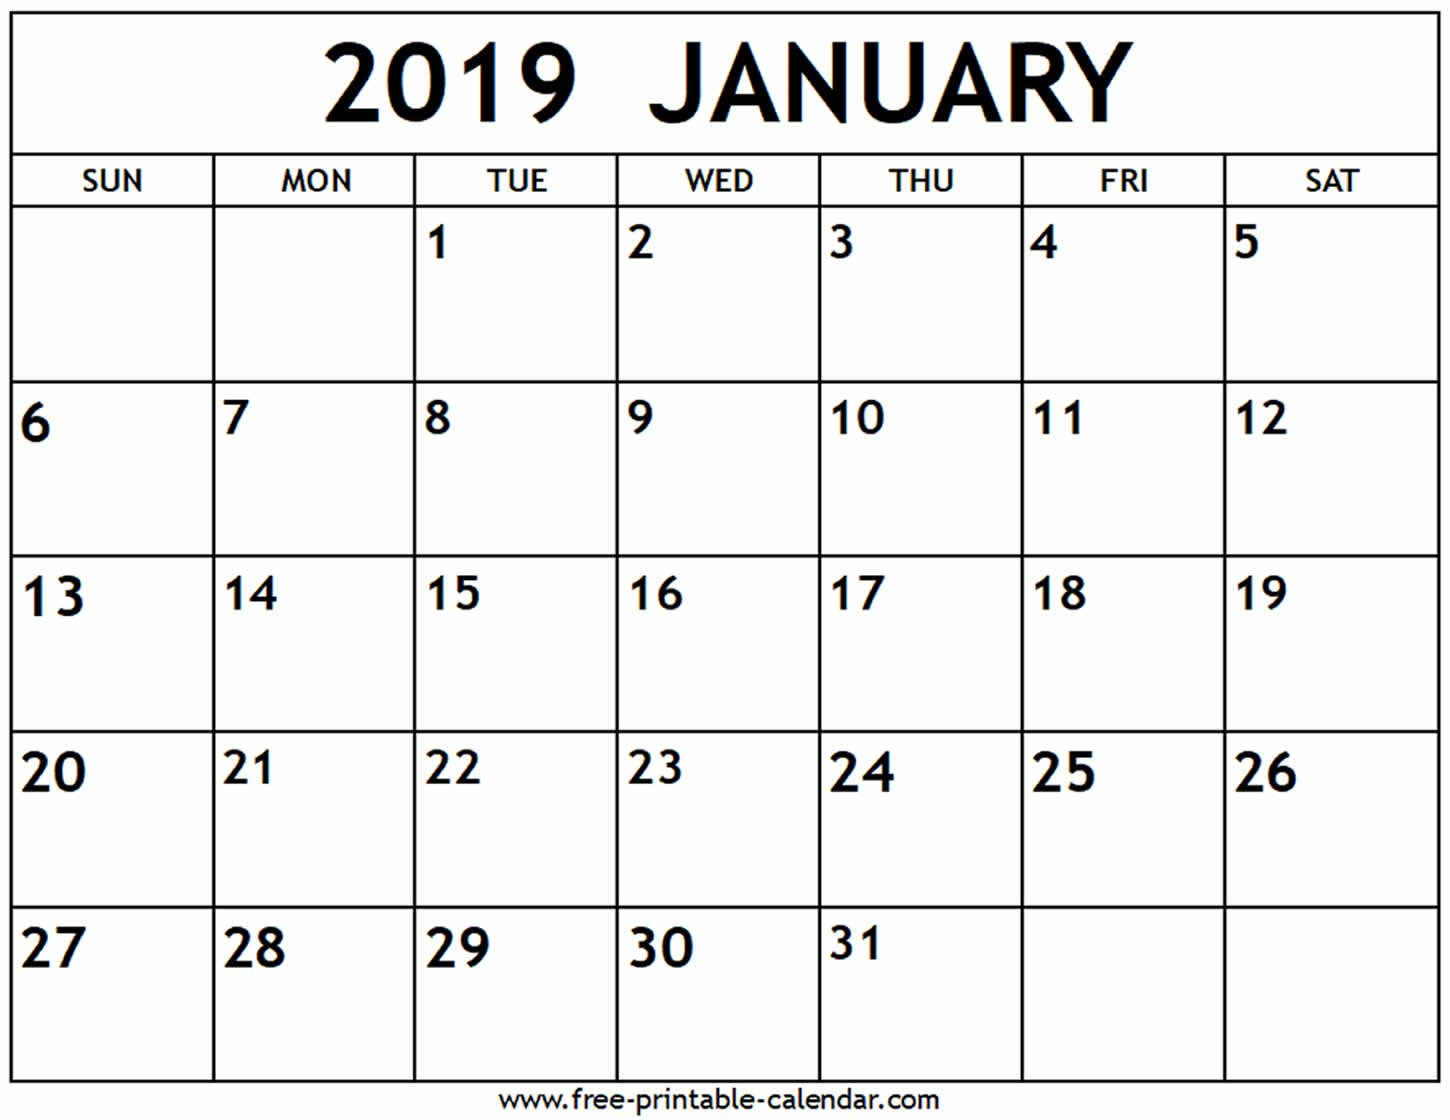 January 2019 Calendar - Free-Printable-Calendar Calendar Of 2019 January